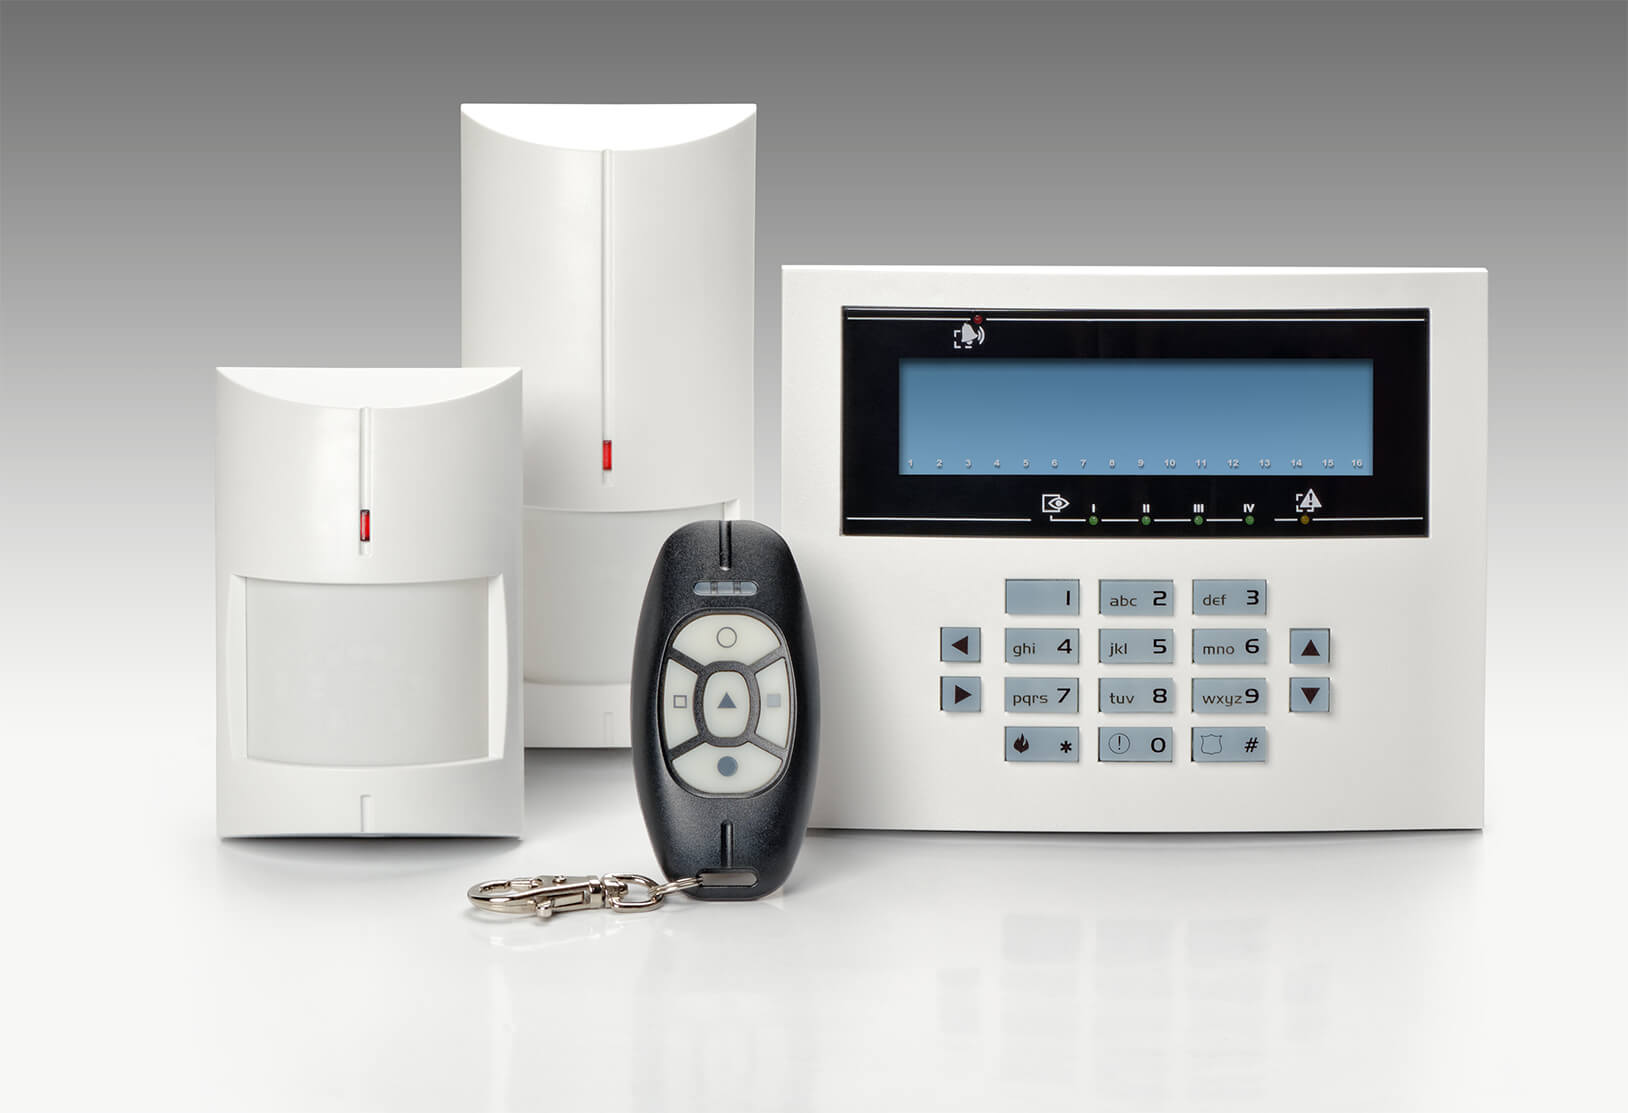 Business & Residential NACOSS Approved Burglar Alarms In Totteridge N20 - Local Totteridge N20 security company.Call 02078872244 - Dedicated to Safety & Security. Companies, shops and homes ..